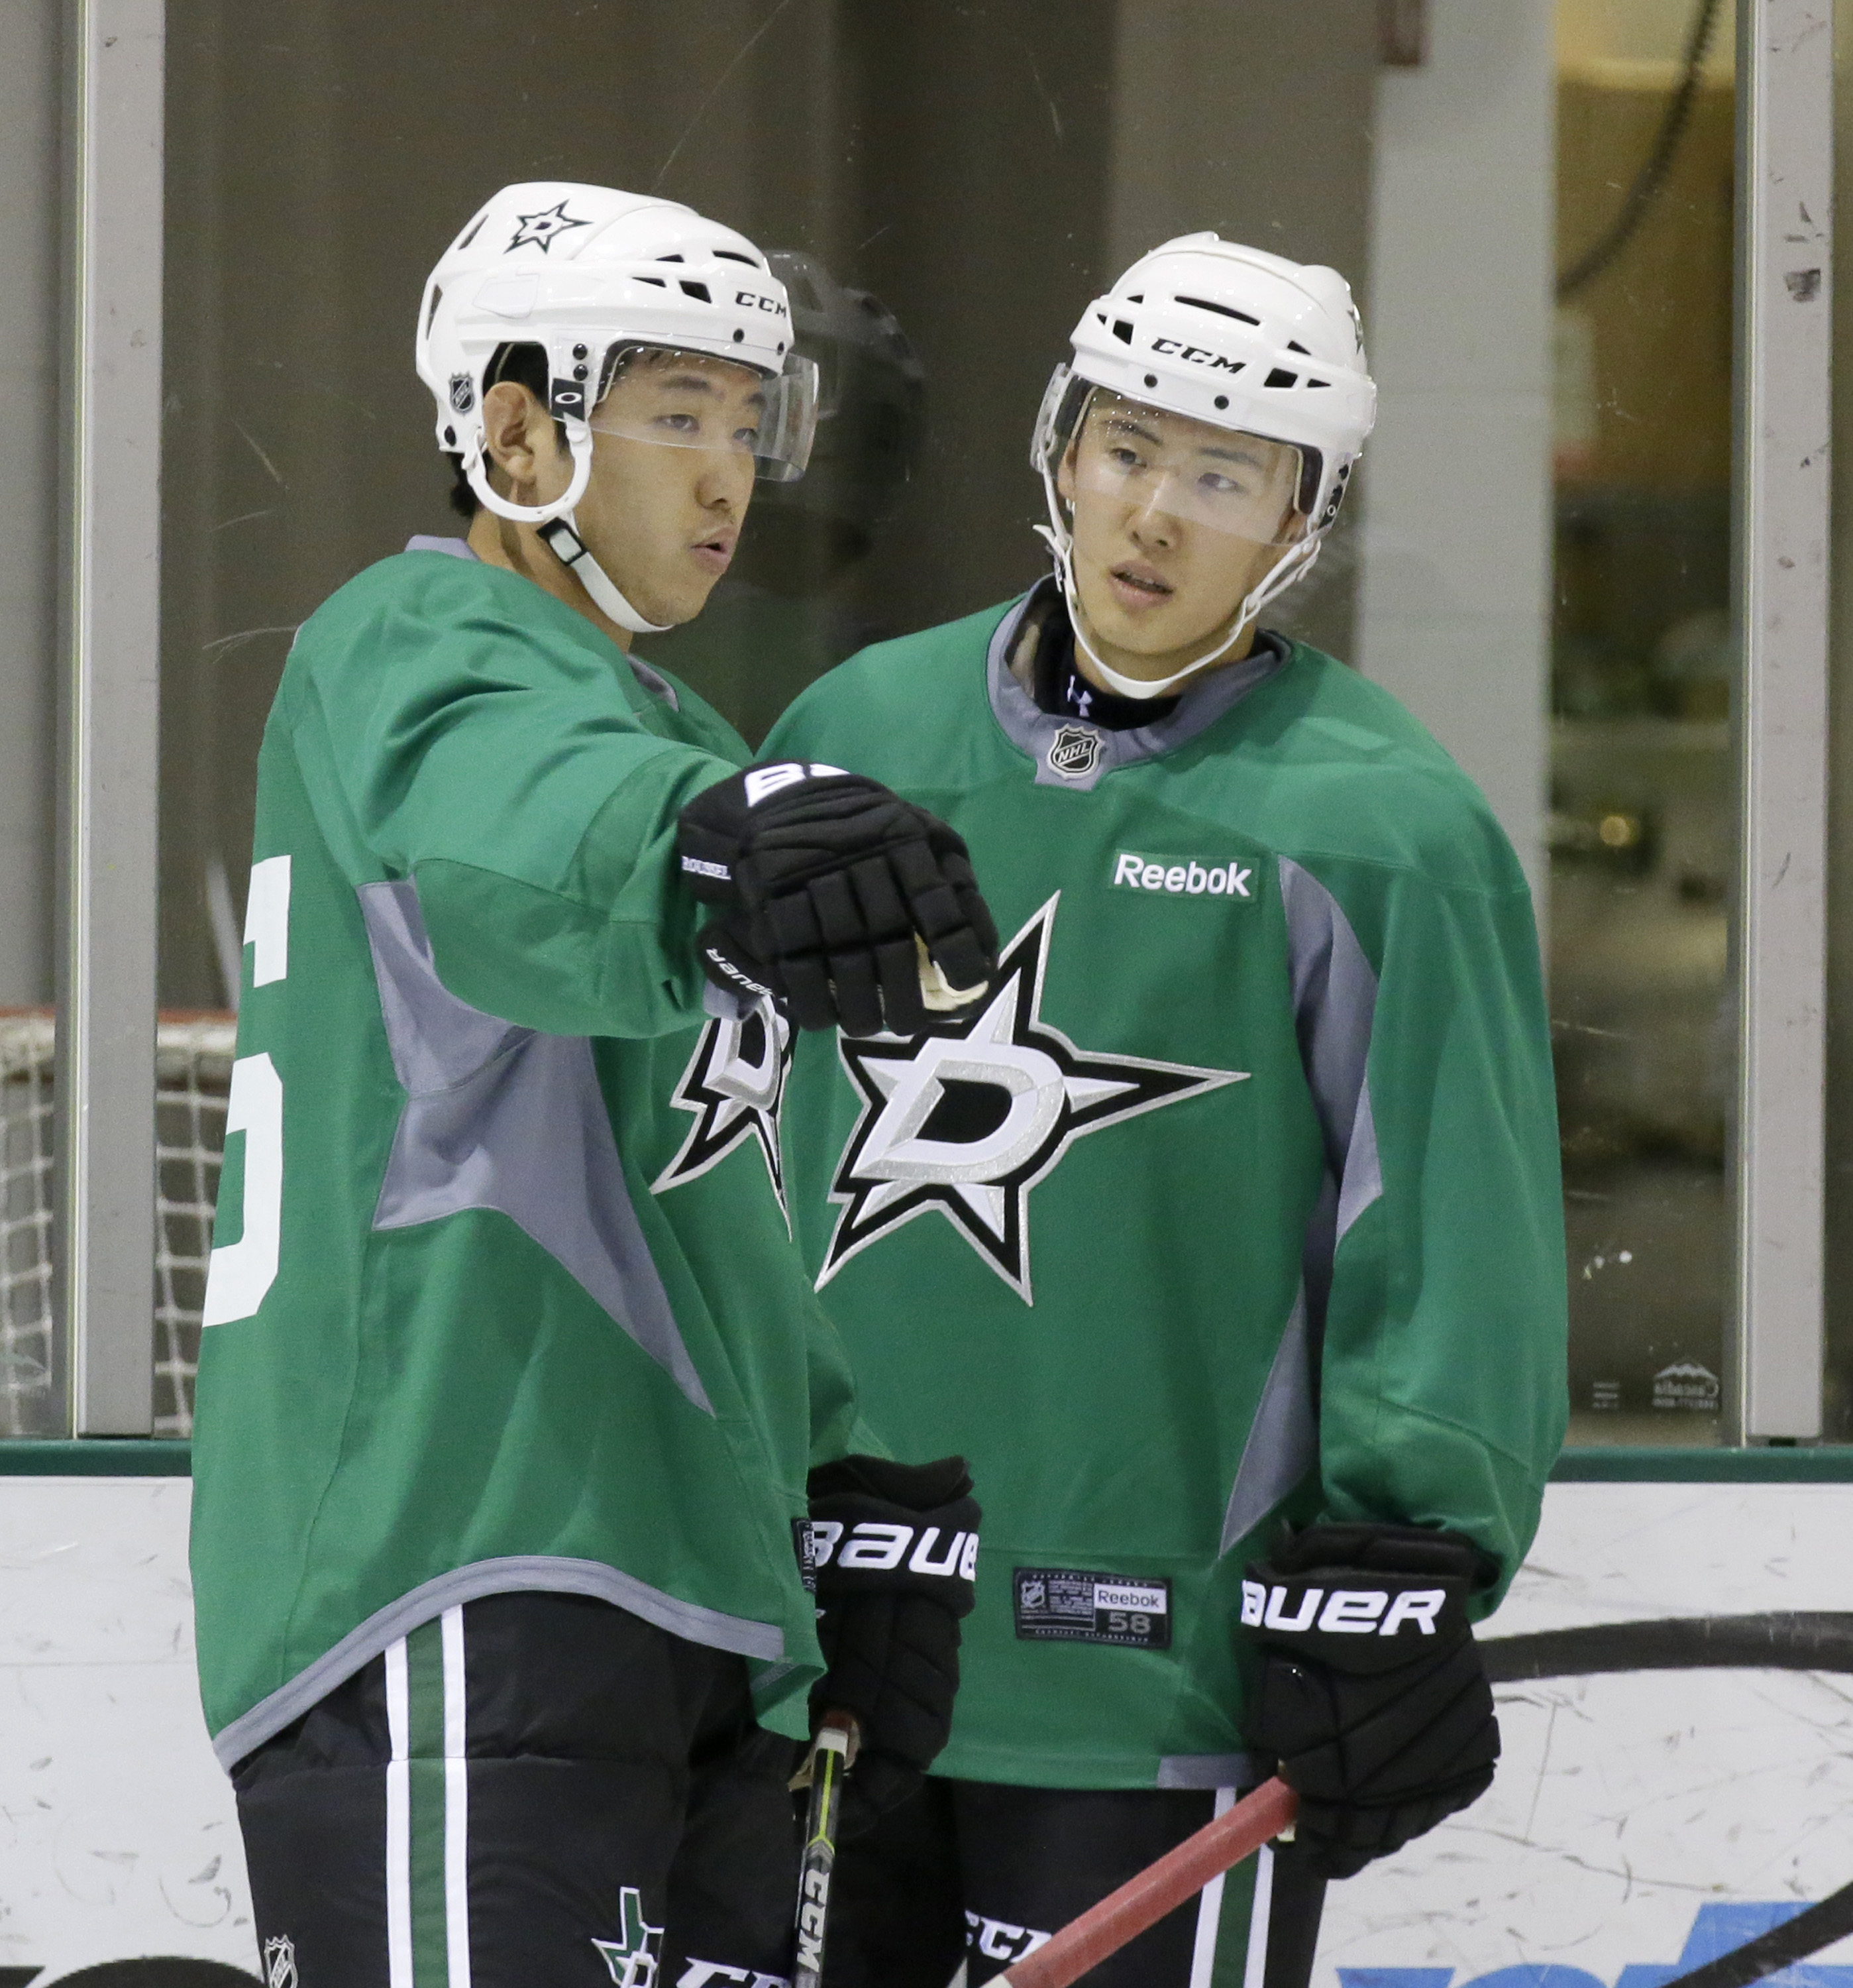 Wonjun Kim, right, of South Korea, listens to fellow South Korean Jinhui Ahn during a Dallas Stars development hockey camp at the team's practice facility in Frisco, Texas, Thursday, July 9, 2015. South Korean players from the Asia League Ice Hockey are w